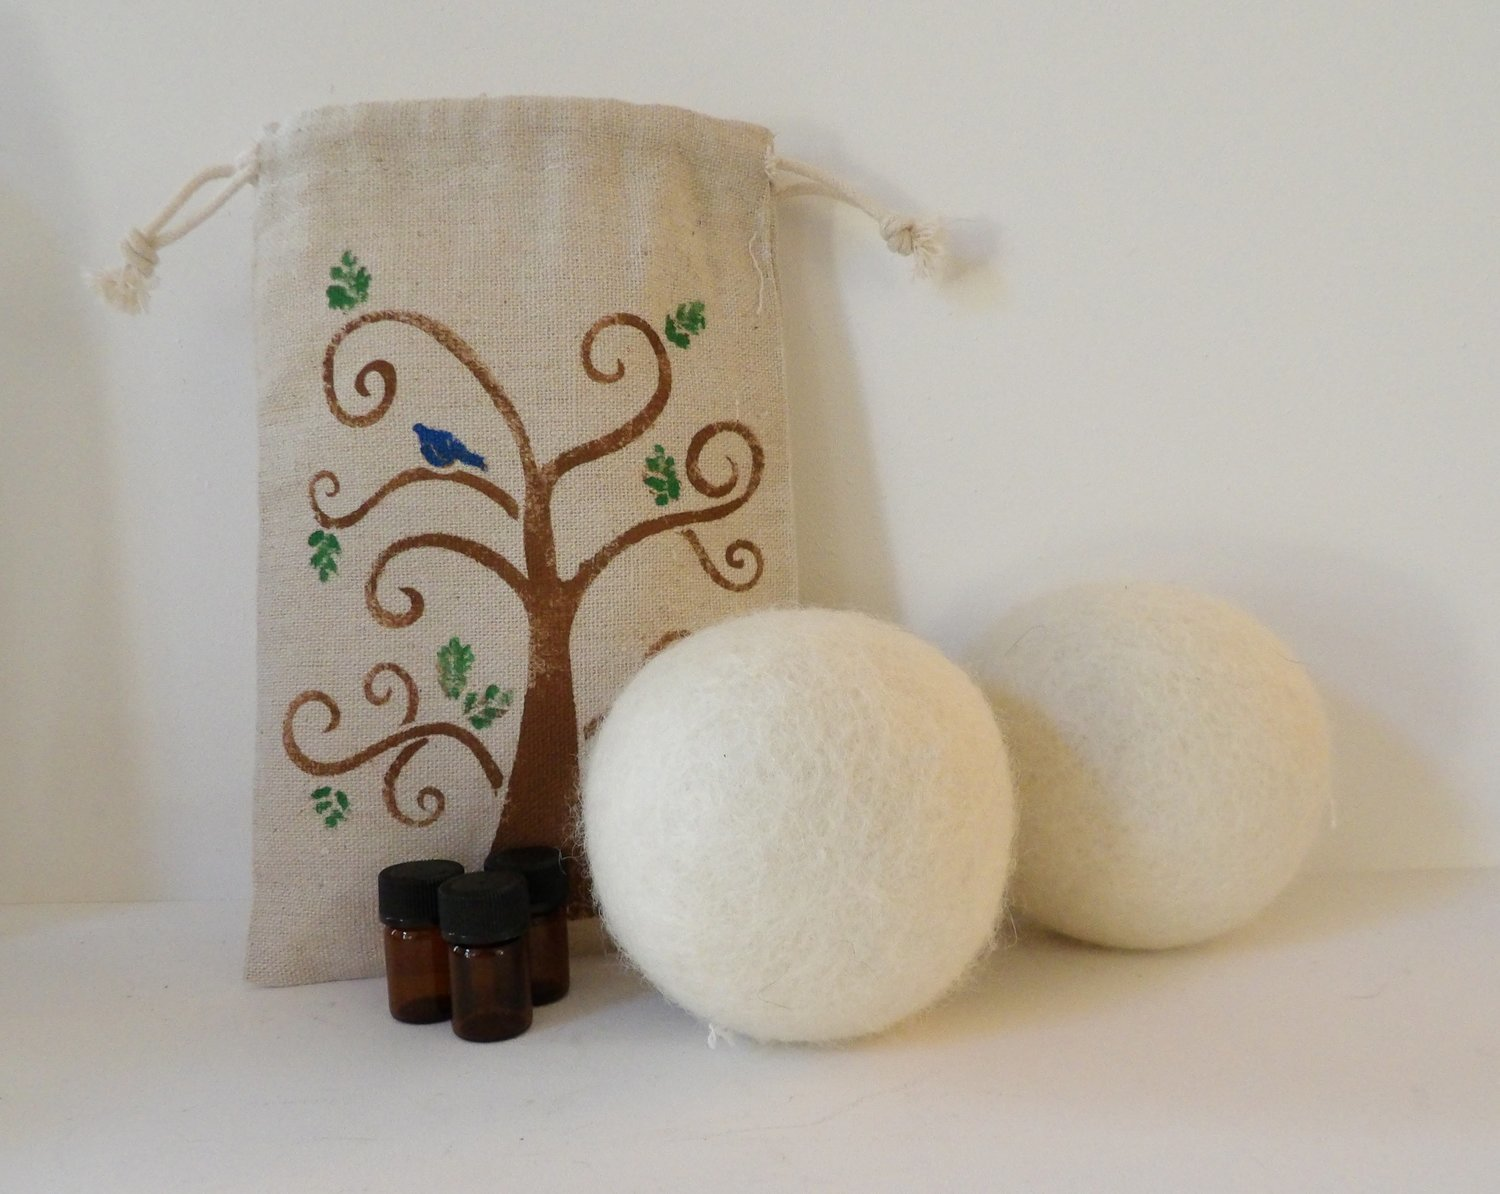 Natural Home ~ Premium 100% Wool Dryer Balls (Set of 2) w/Reusable Handpainted Bag & 3 sample Essential Oils